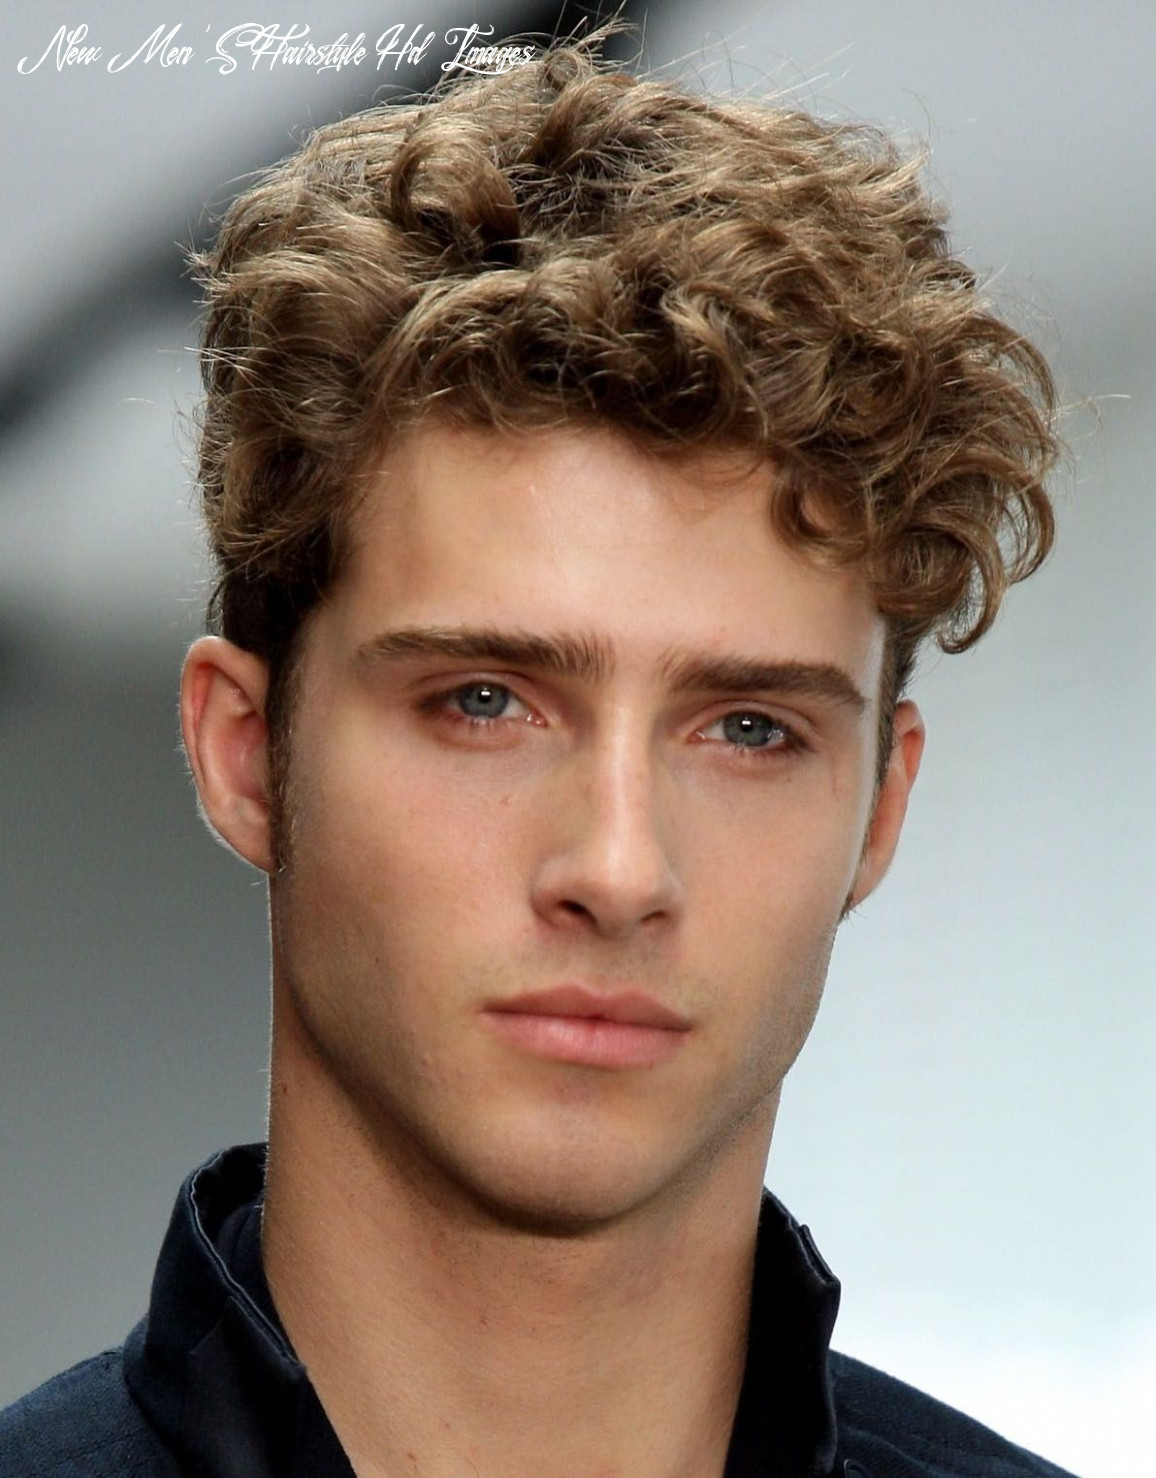 Image for New Haircuts For Men Hairstyles HD 9 | Curly hair men ...